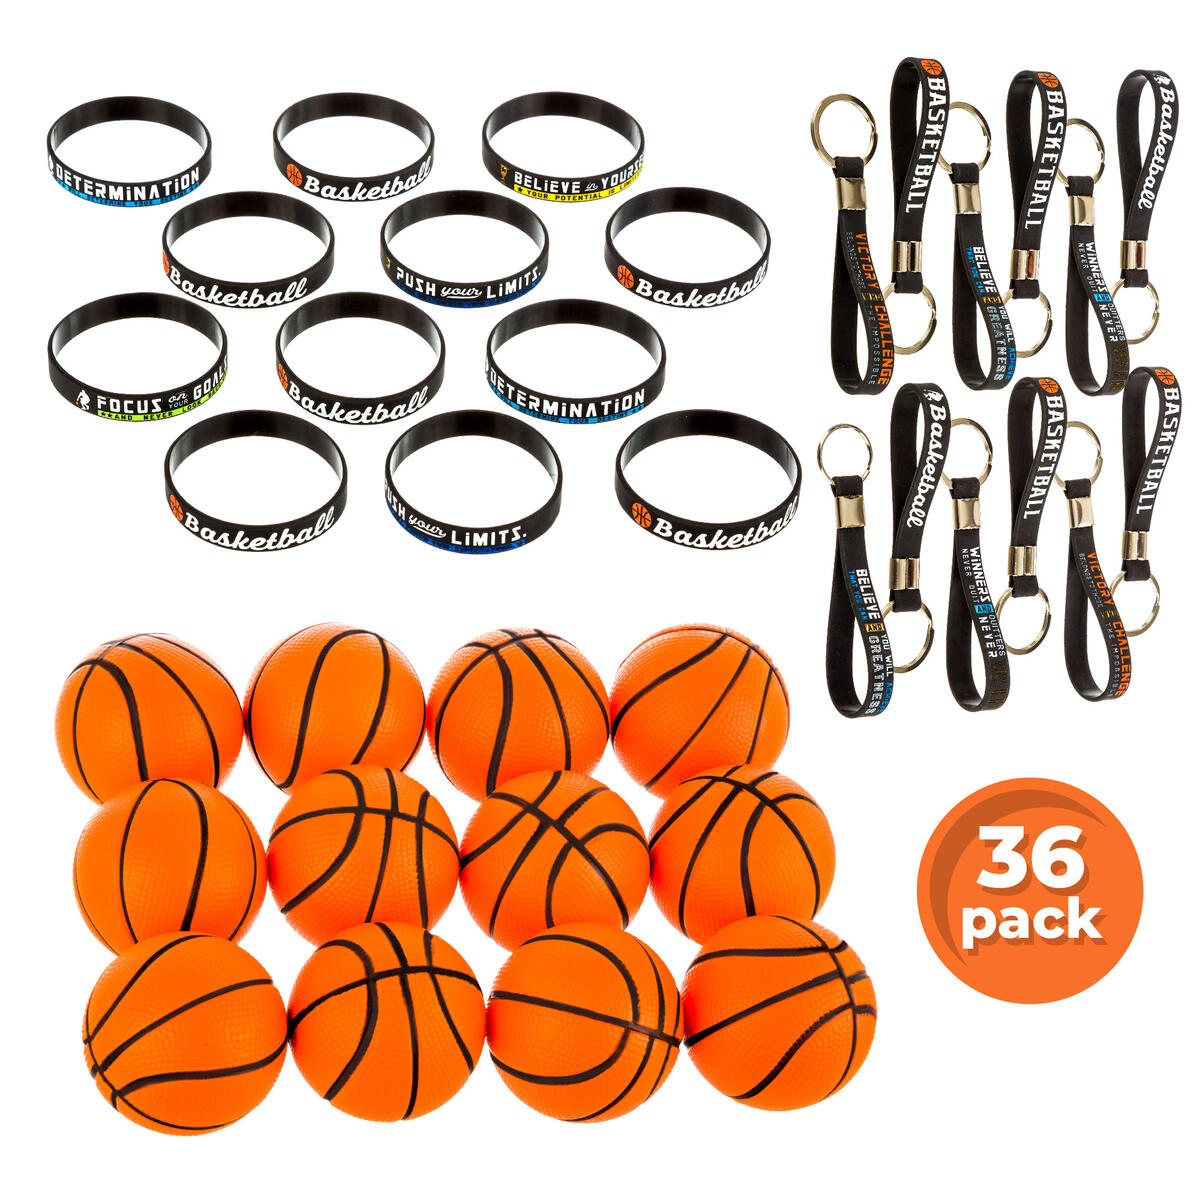 GRANNUS Basketball Party Favors,Pack of 36 Basketball Gifts Including 12x Motivational Silicone Bracelets,12x Squishy Stress Balls and 12x Keychains with Quotes,School Team Birthday Gifts